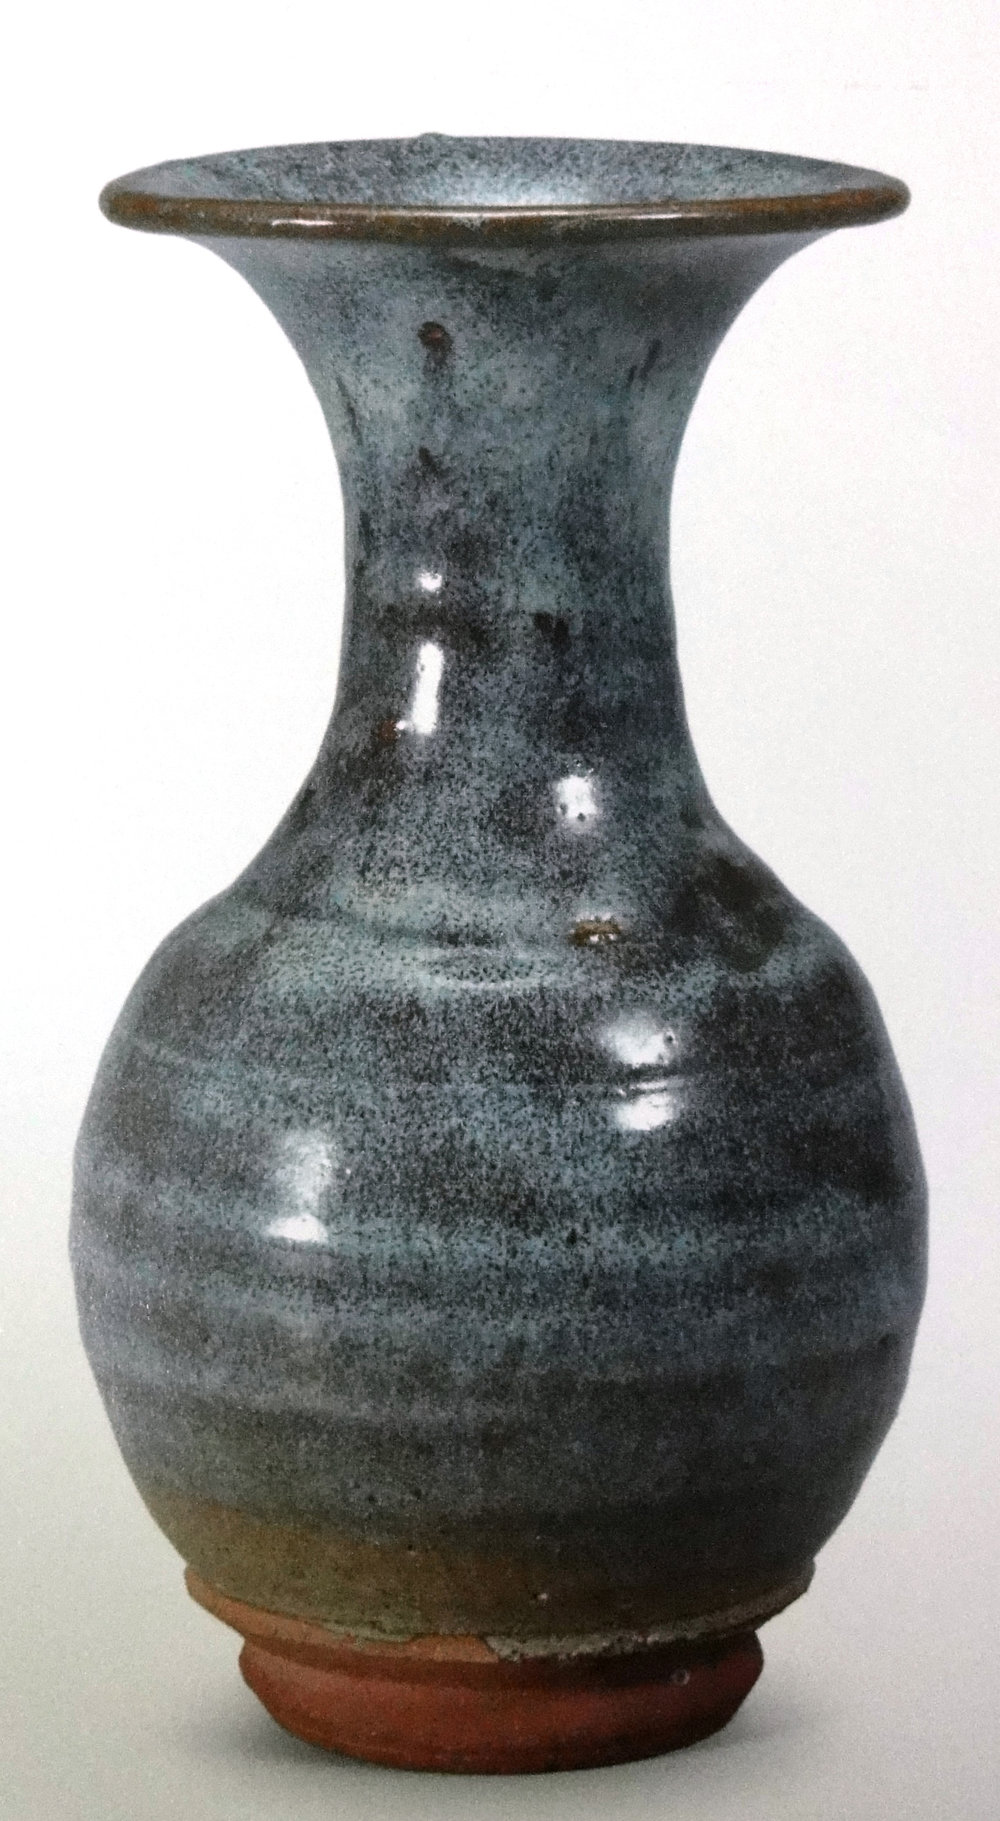 SINAN_32_CHEOL-JEOM-YO_BOTTLE-WITH-OPAQUE-WHITE-GLAZE.jpg